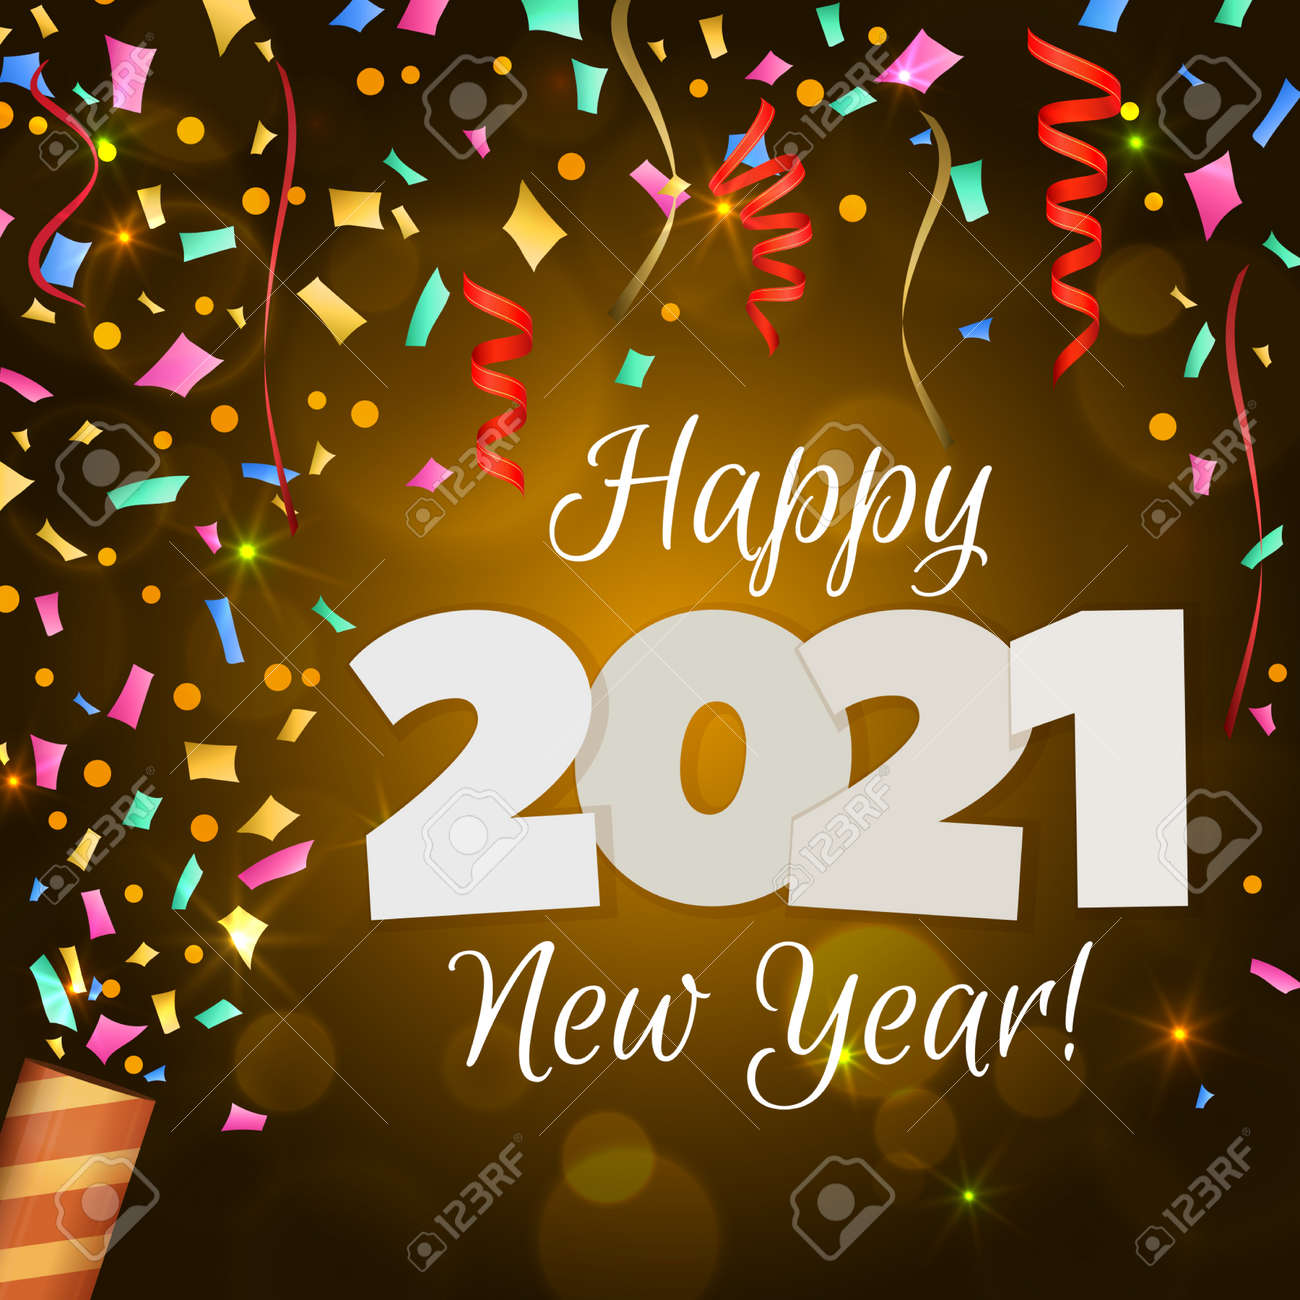 Happy New Year 2021 greeting banner. Festive background with colorful confetti, party popper and sparkles. Vector - 161156605